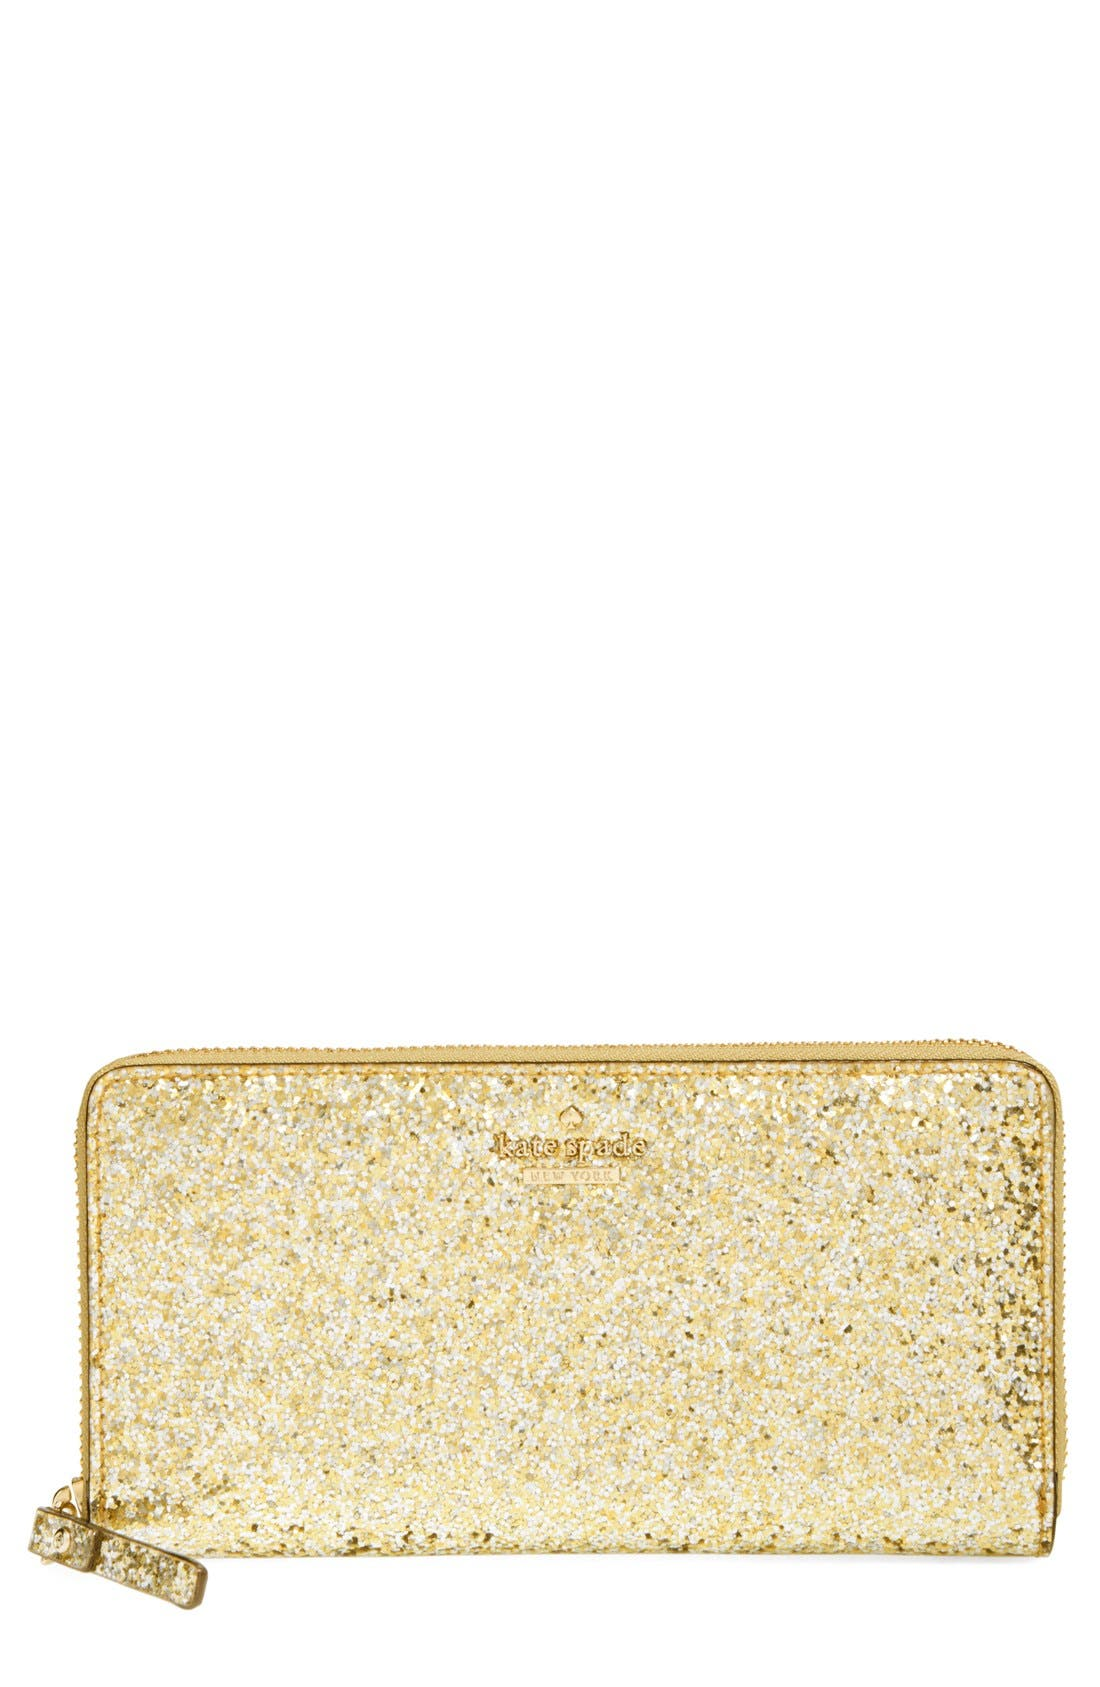 Alternate Image 1 Selected - kate spade new york 'glitter bug - lacey' zip around wallet